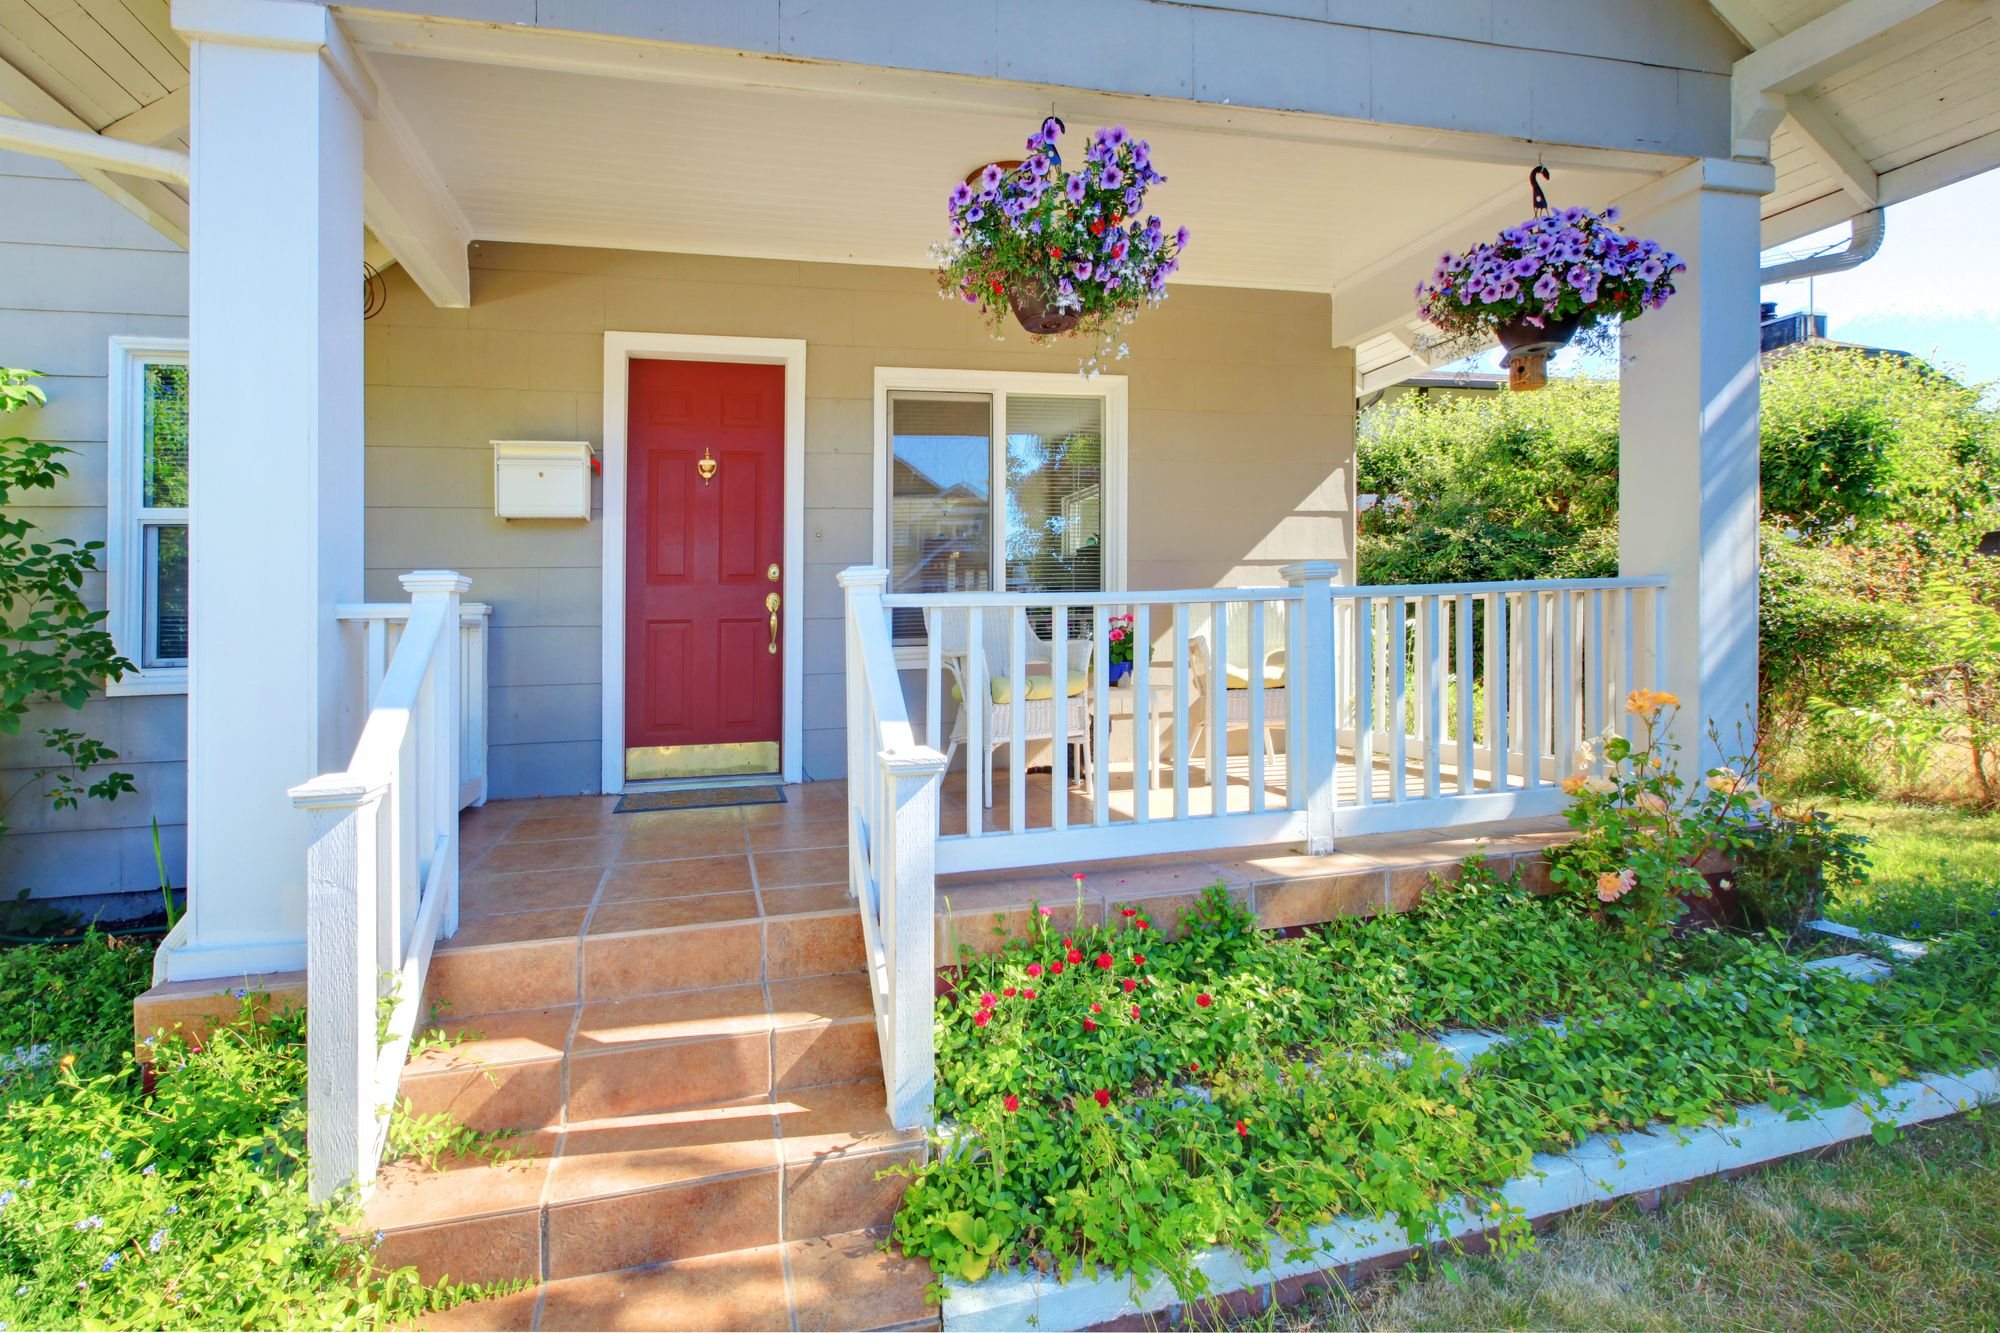 Top Four Ways Your Home's Neighbors Affect Your Home's Value